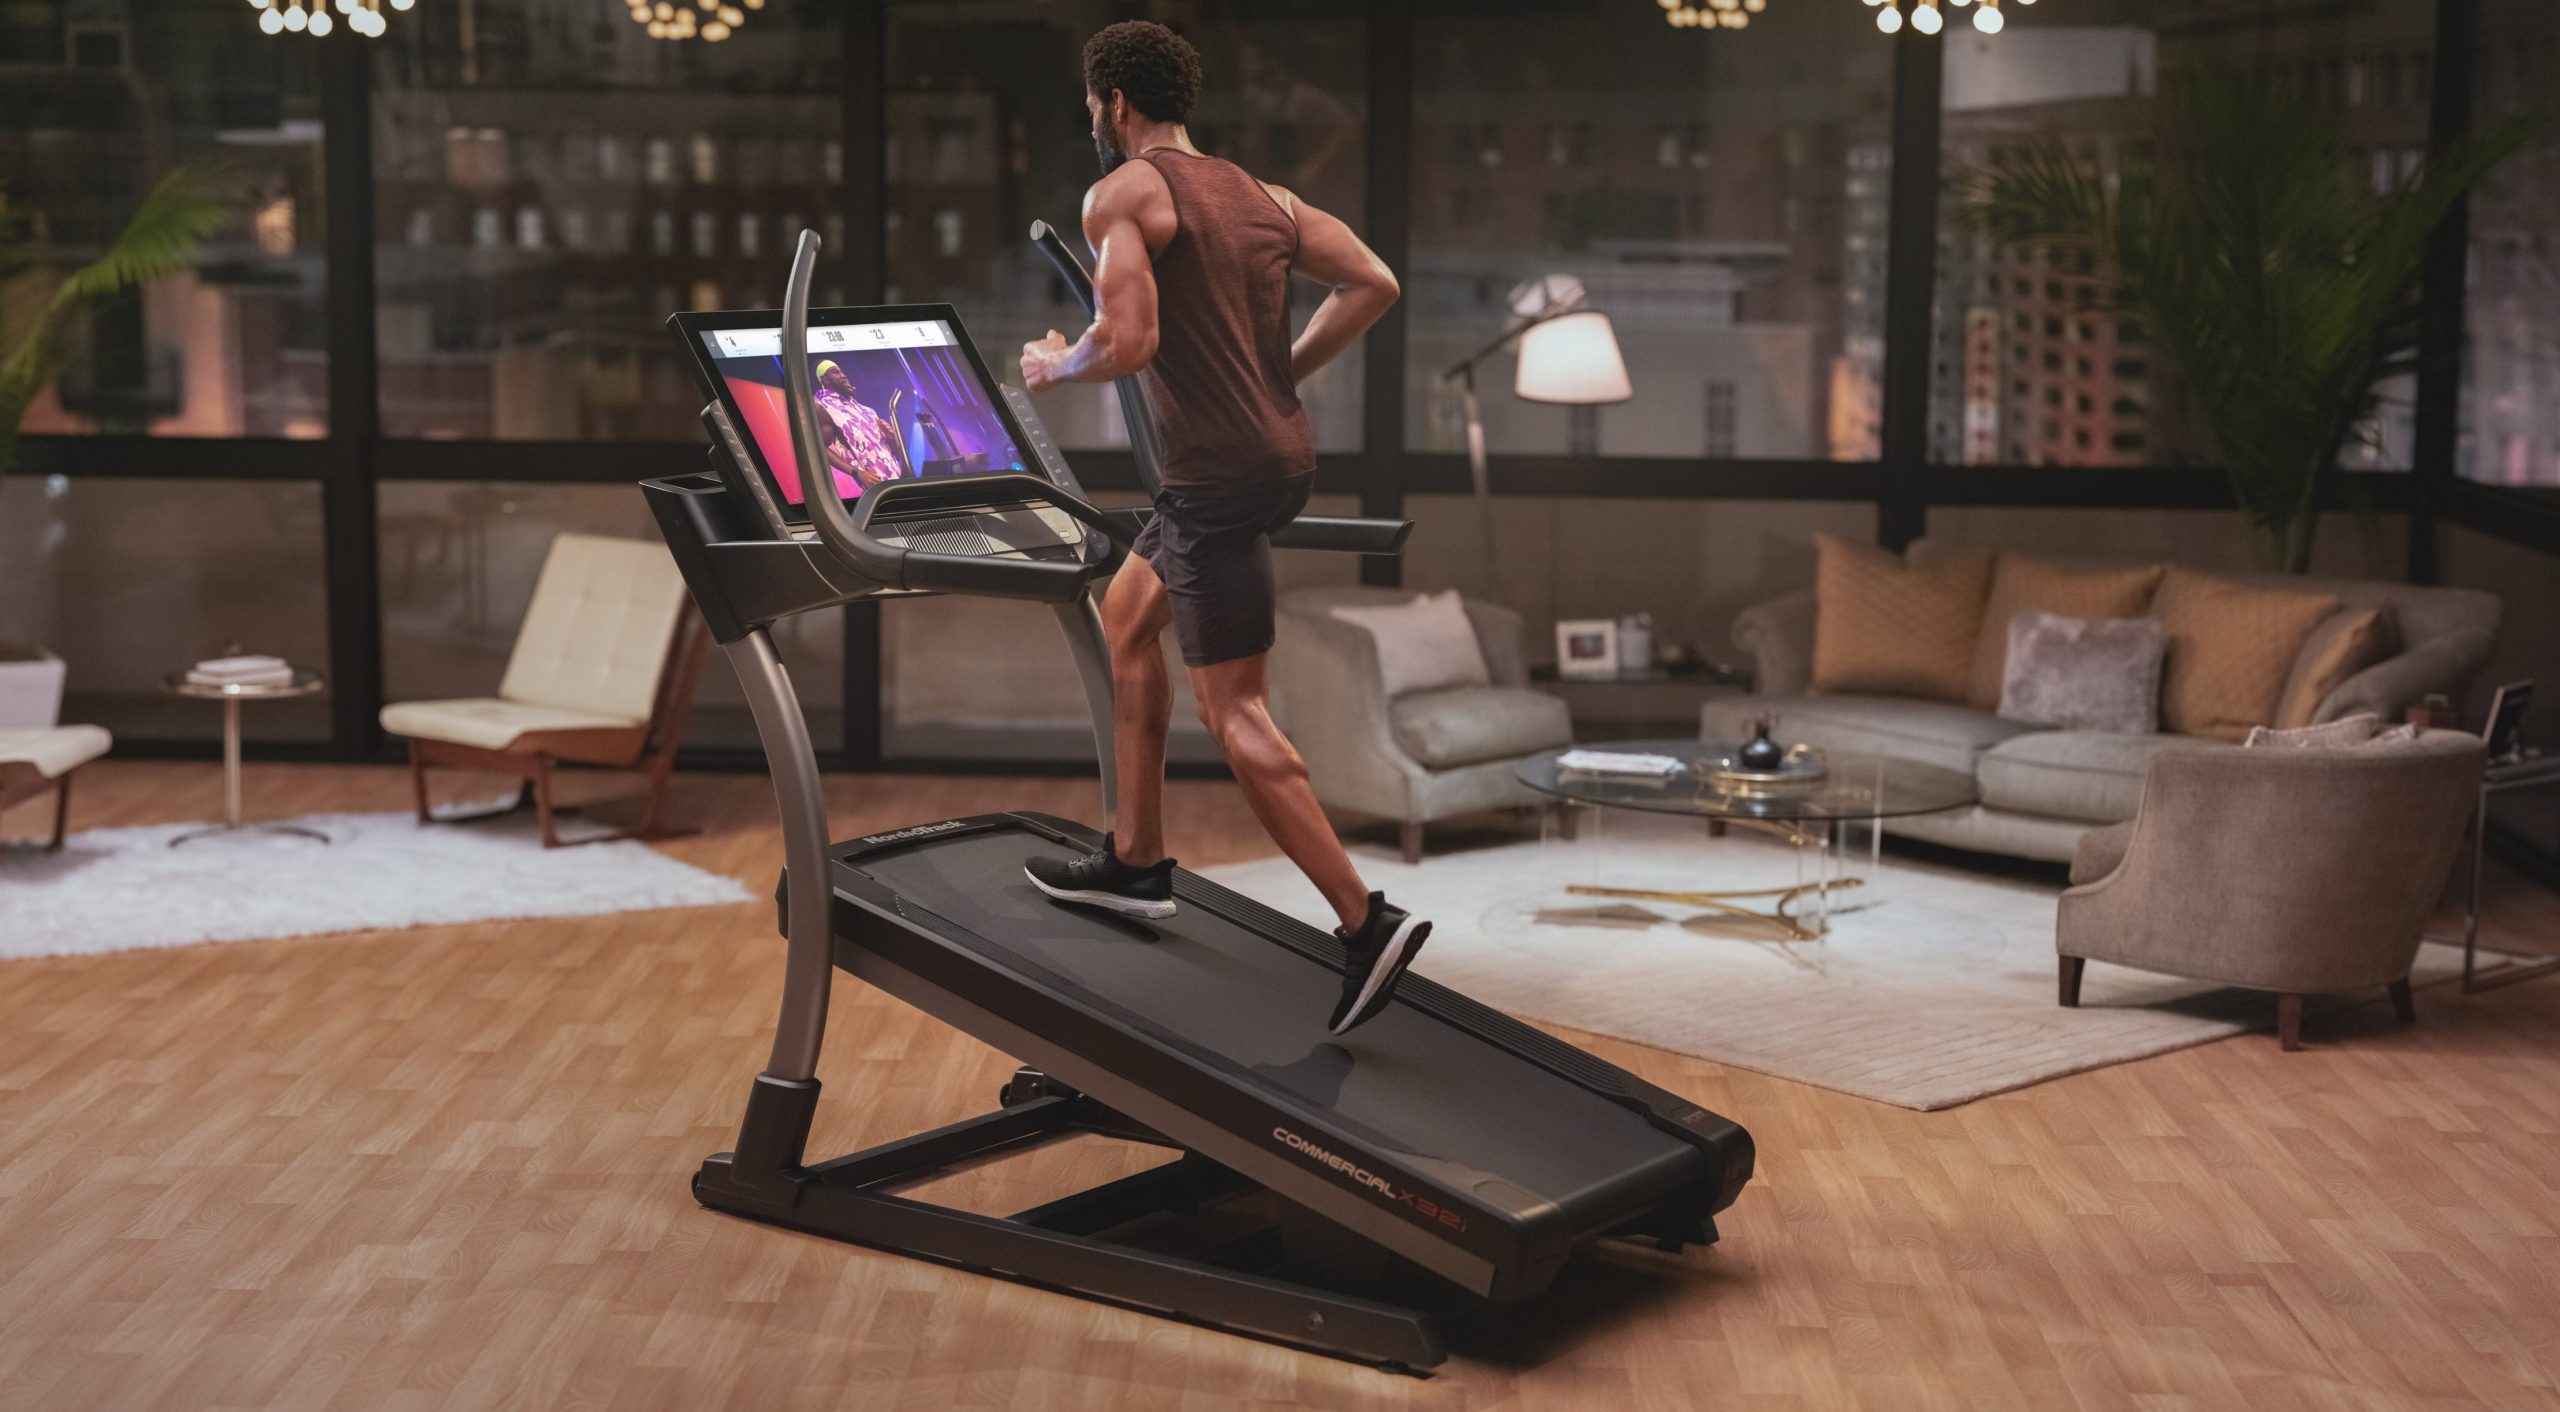 What's New In Online Fitness Equipment Deals?